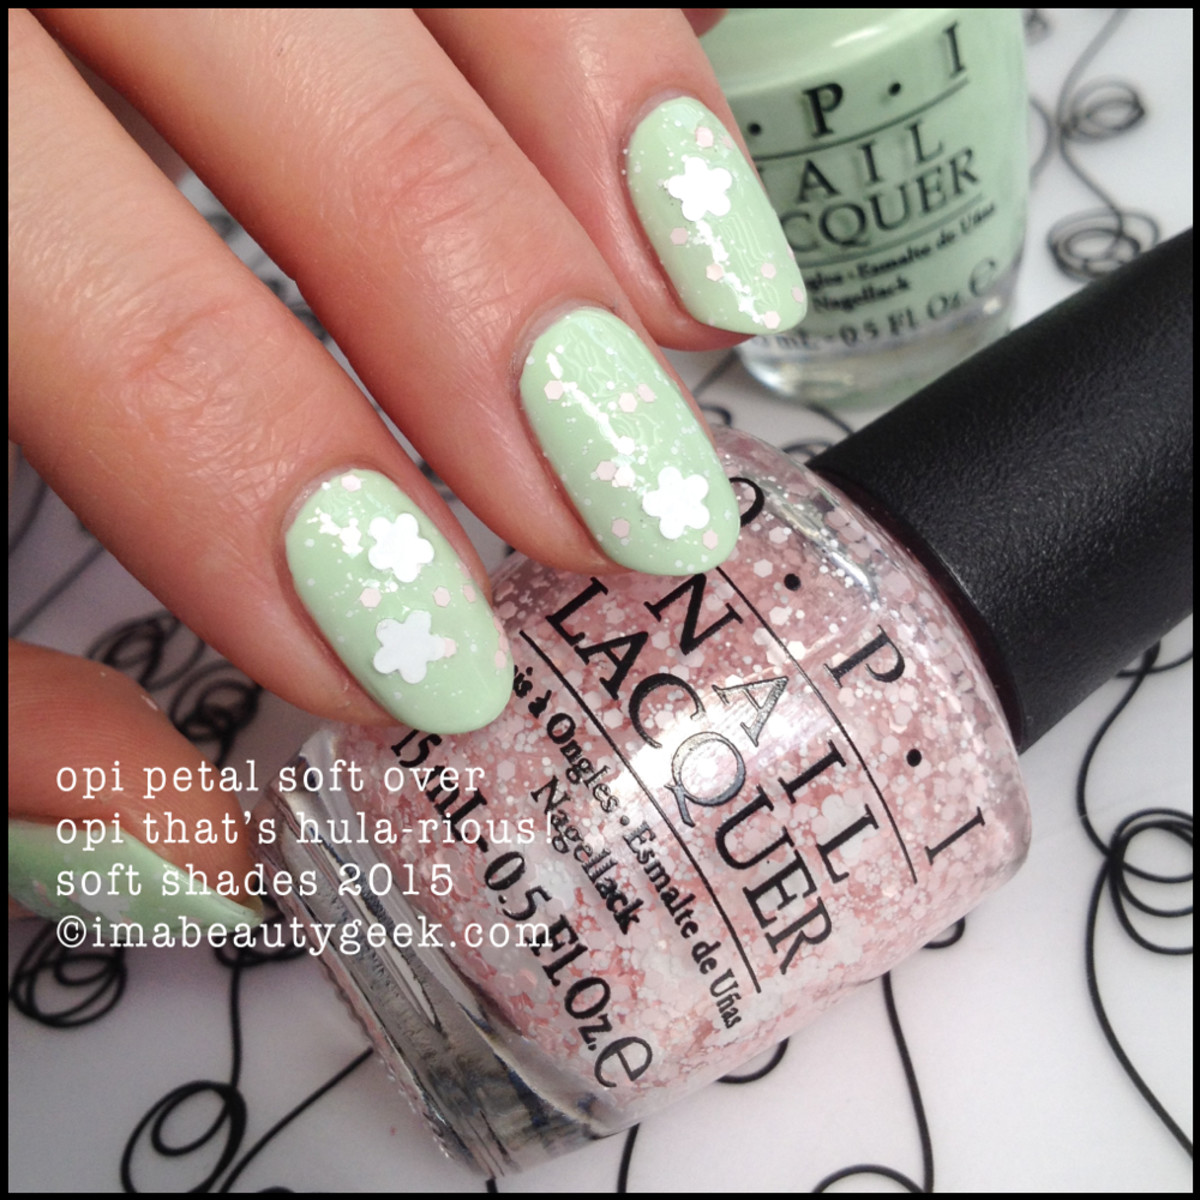 OPI Petal Soft over That's Hula-rious OPI Soft Shades 2015